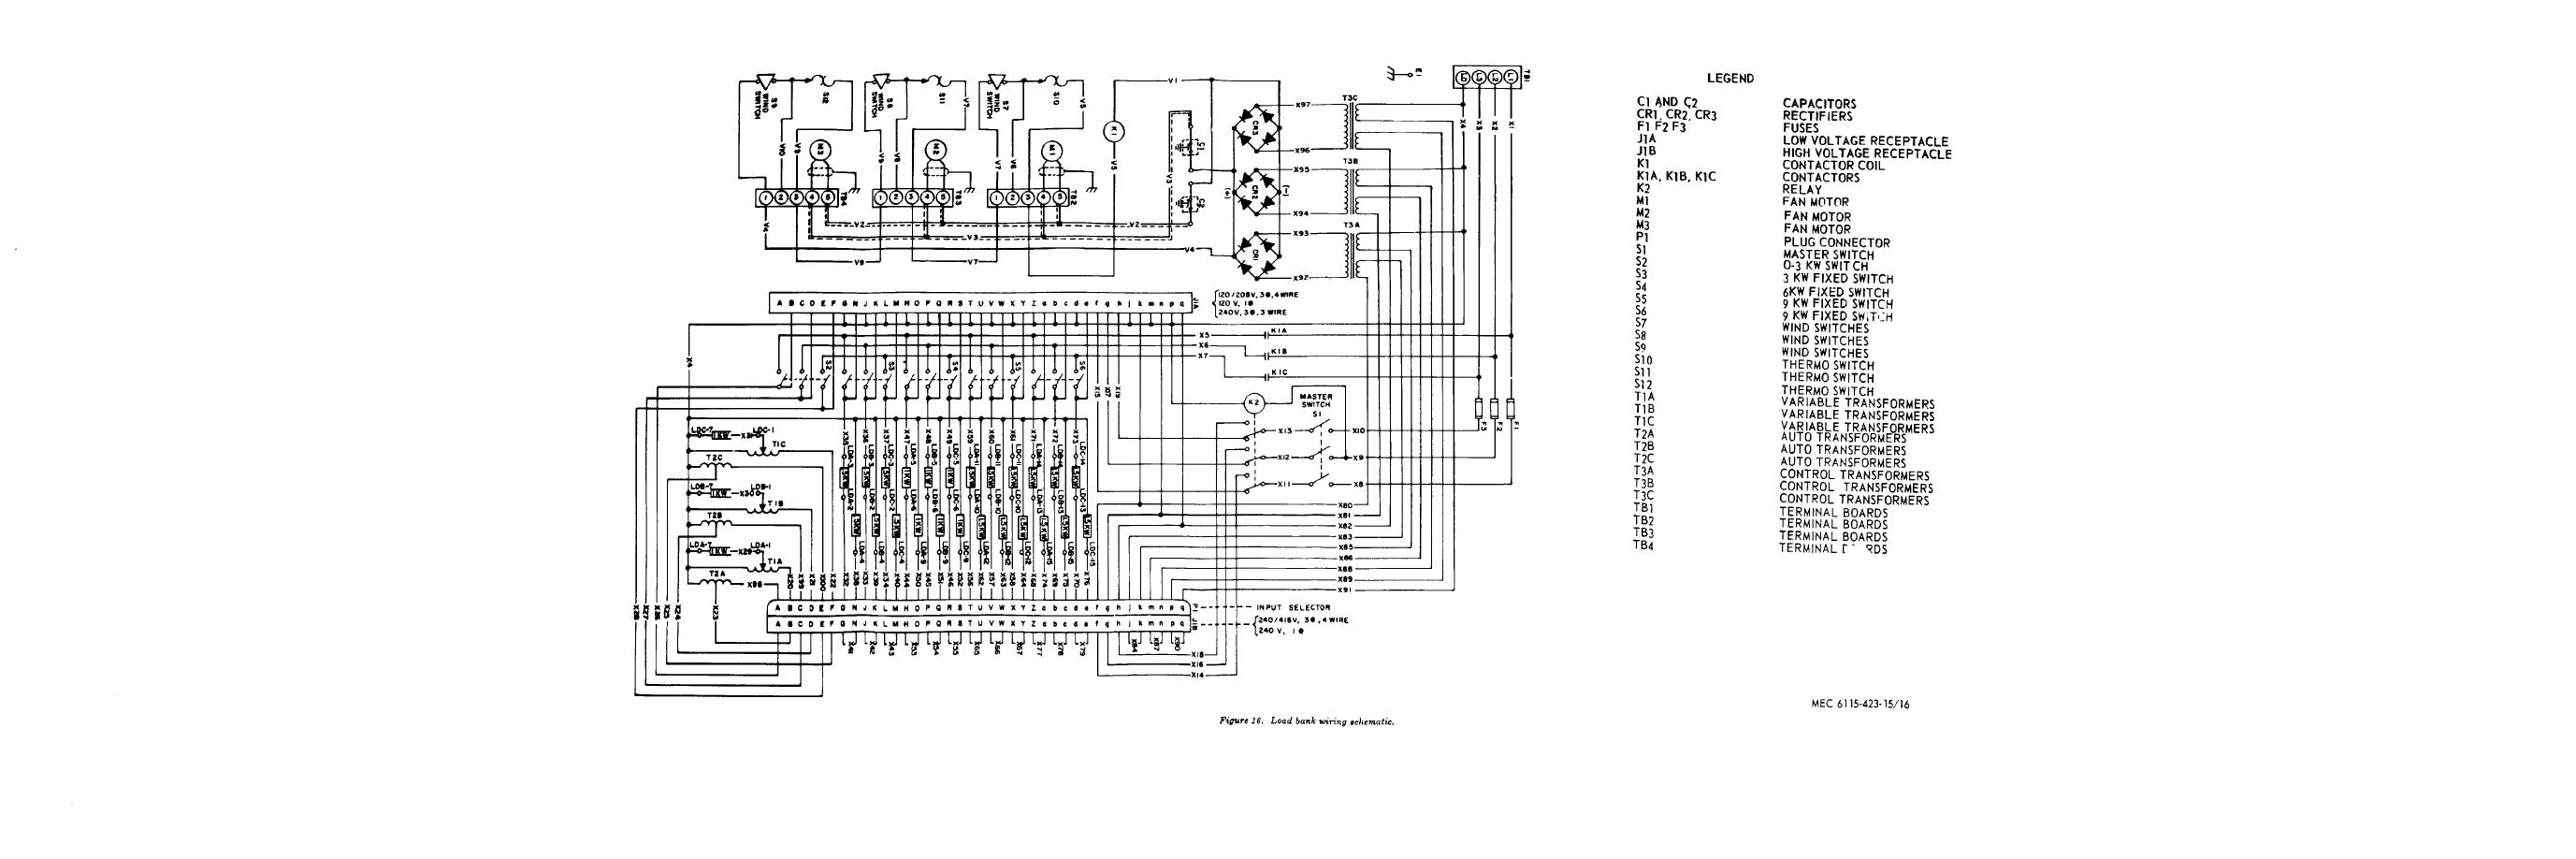 Bank Wiring Circuit Diagram Wiring Library